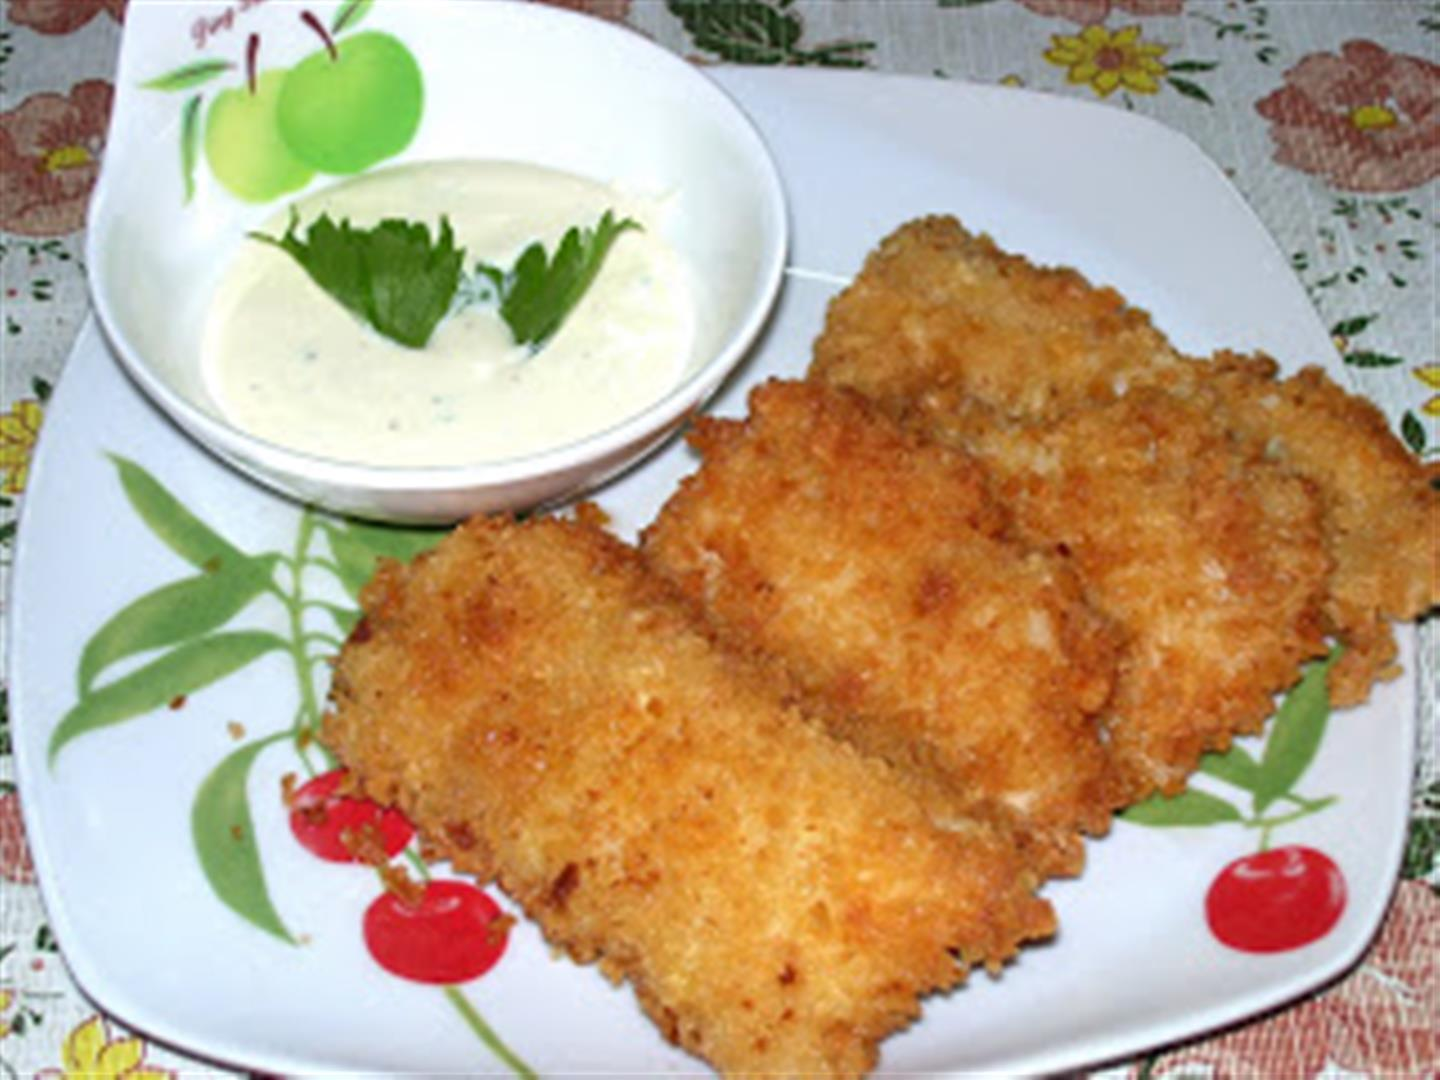 Fish fillet recipe pinoy style for Fish fillet recipe